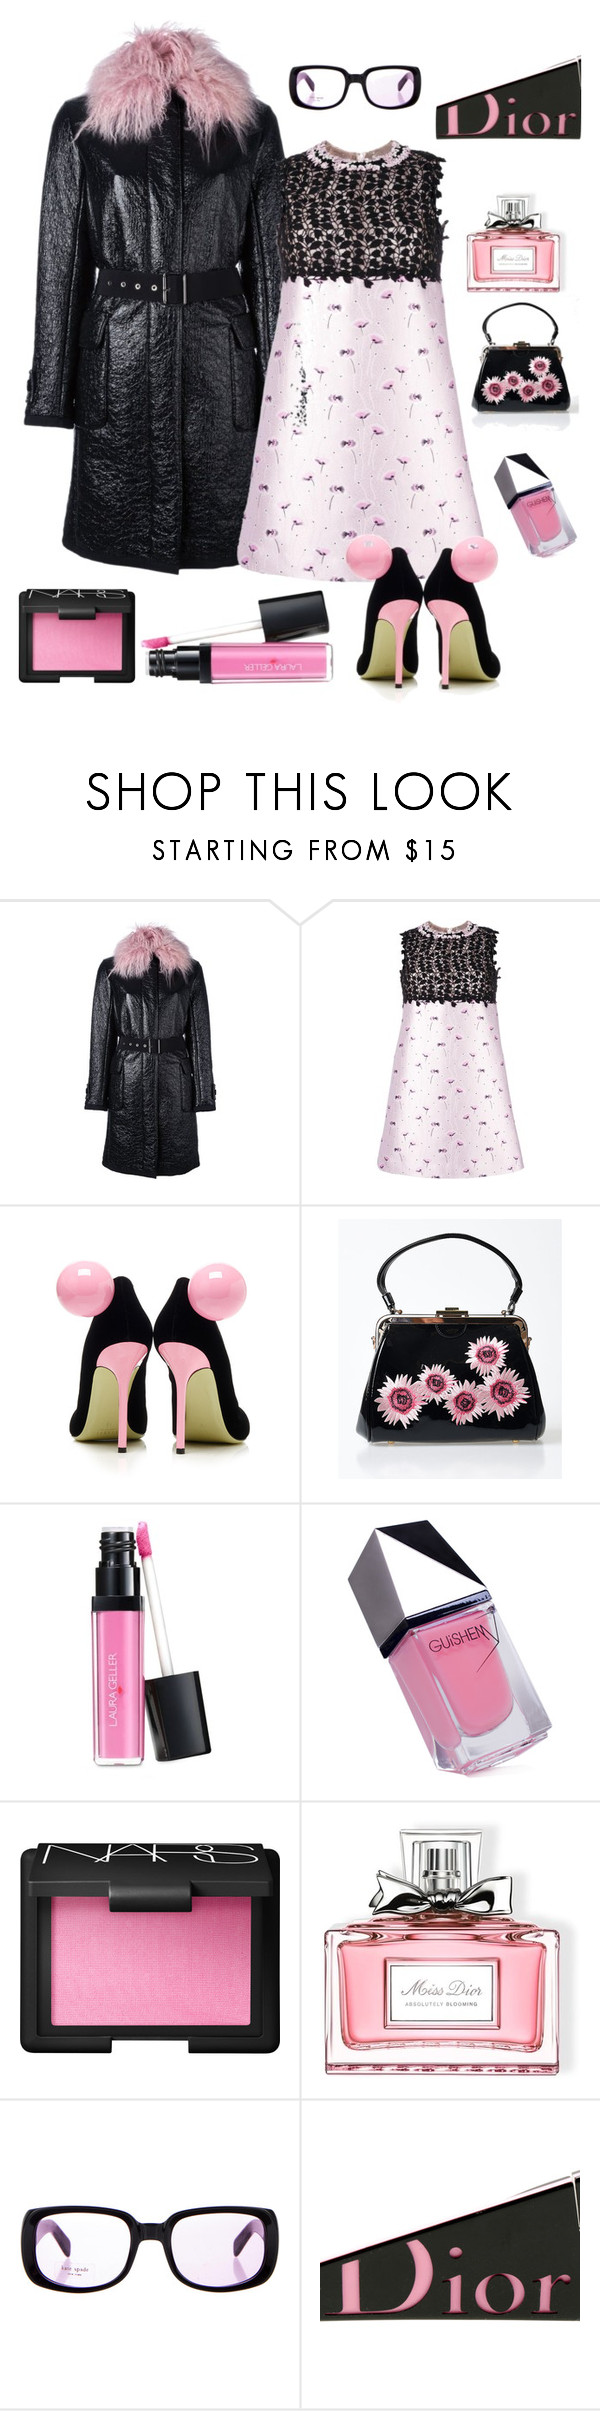 """""""Cocktail hour"""" by kotnourka ❤ liked on Polyvore featuring Moncler, Giambattista Valli, Giannico, Voodoo Vixen, Laura Geller, GUiSHEM, NARS Cosmetics, Christian Dior and Kate Spade"""